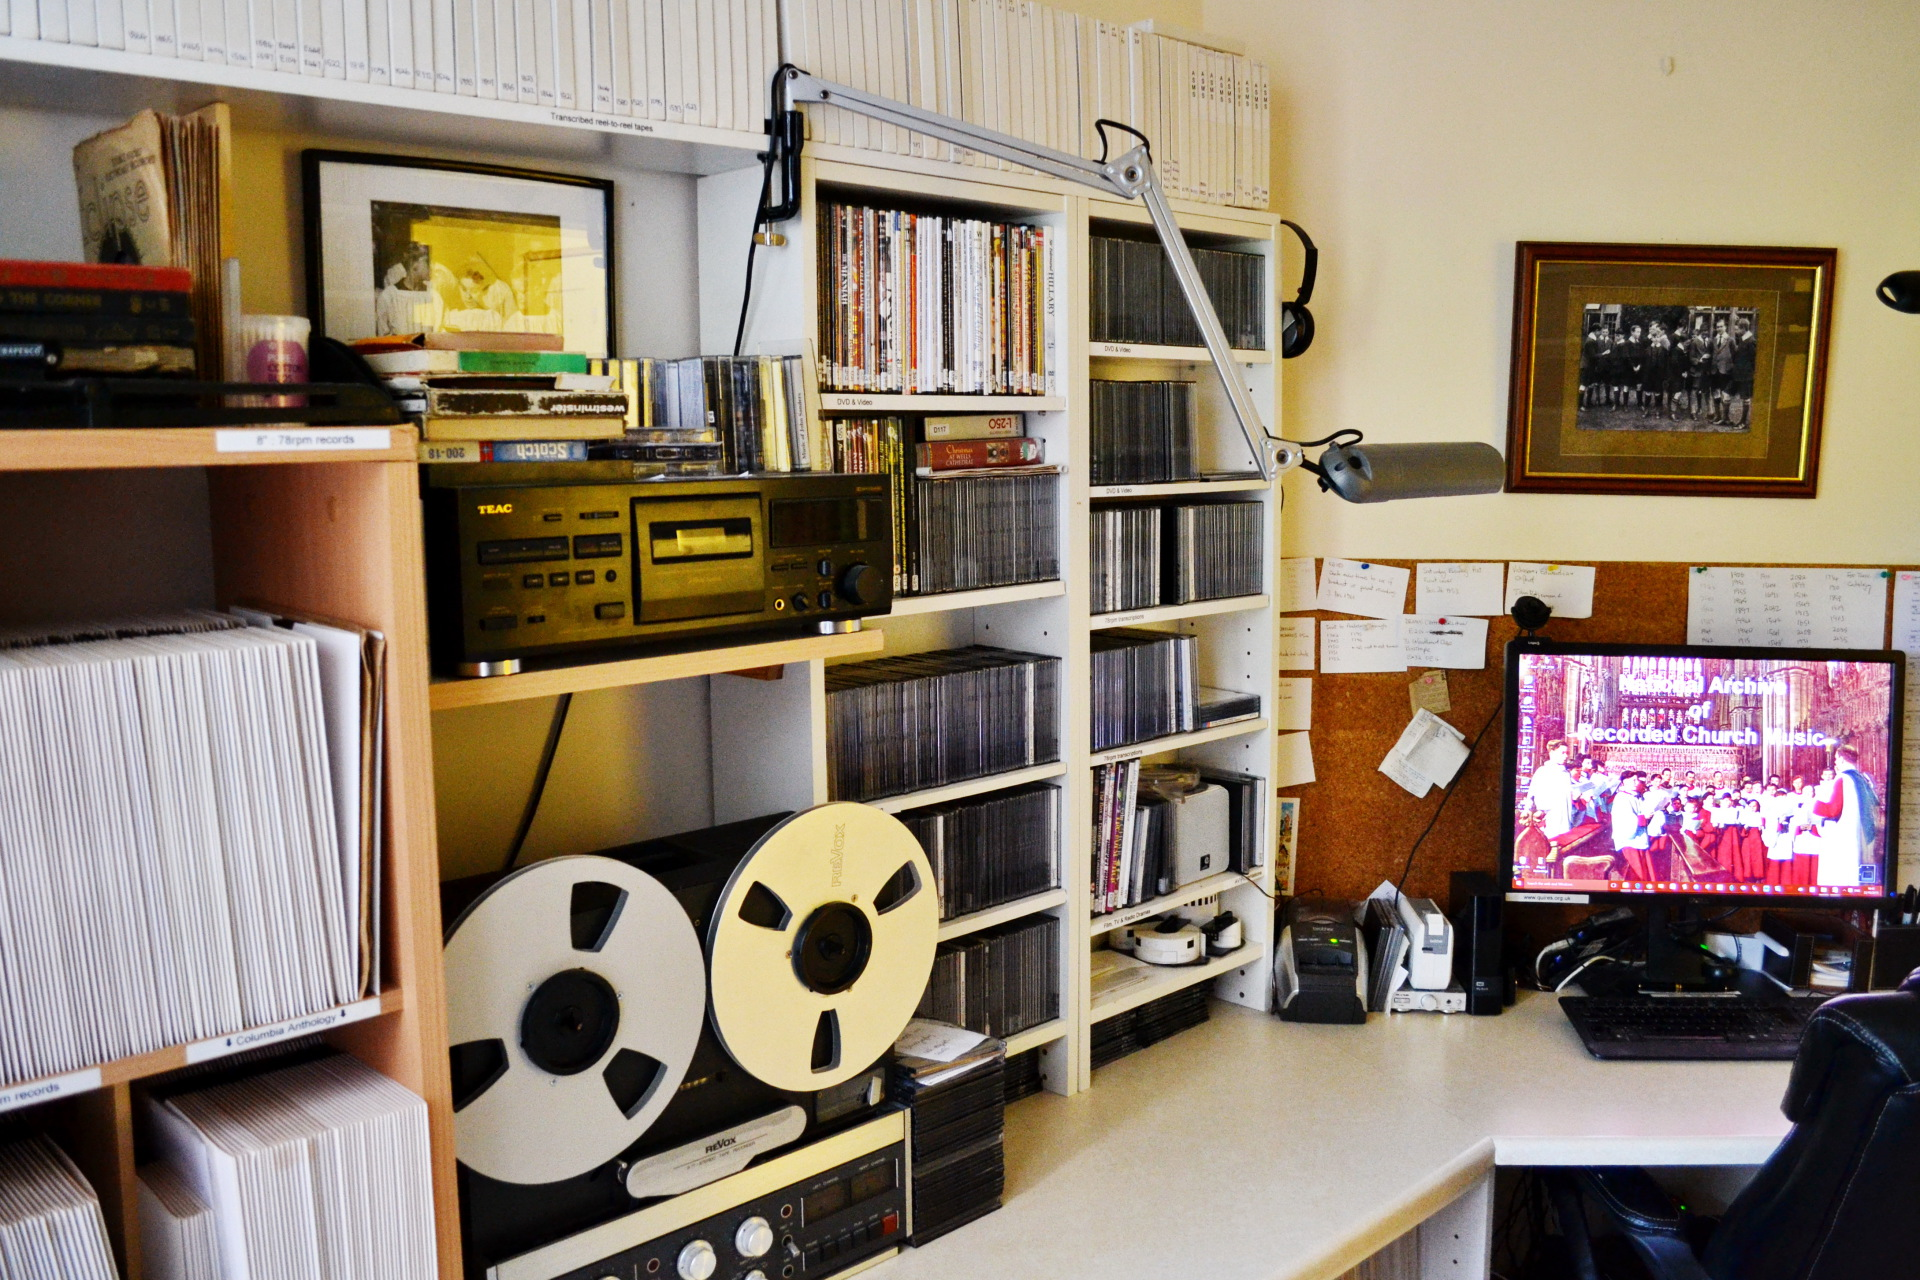 78s, reel-to-reel tapes & TV broadcasts